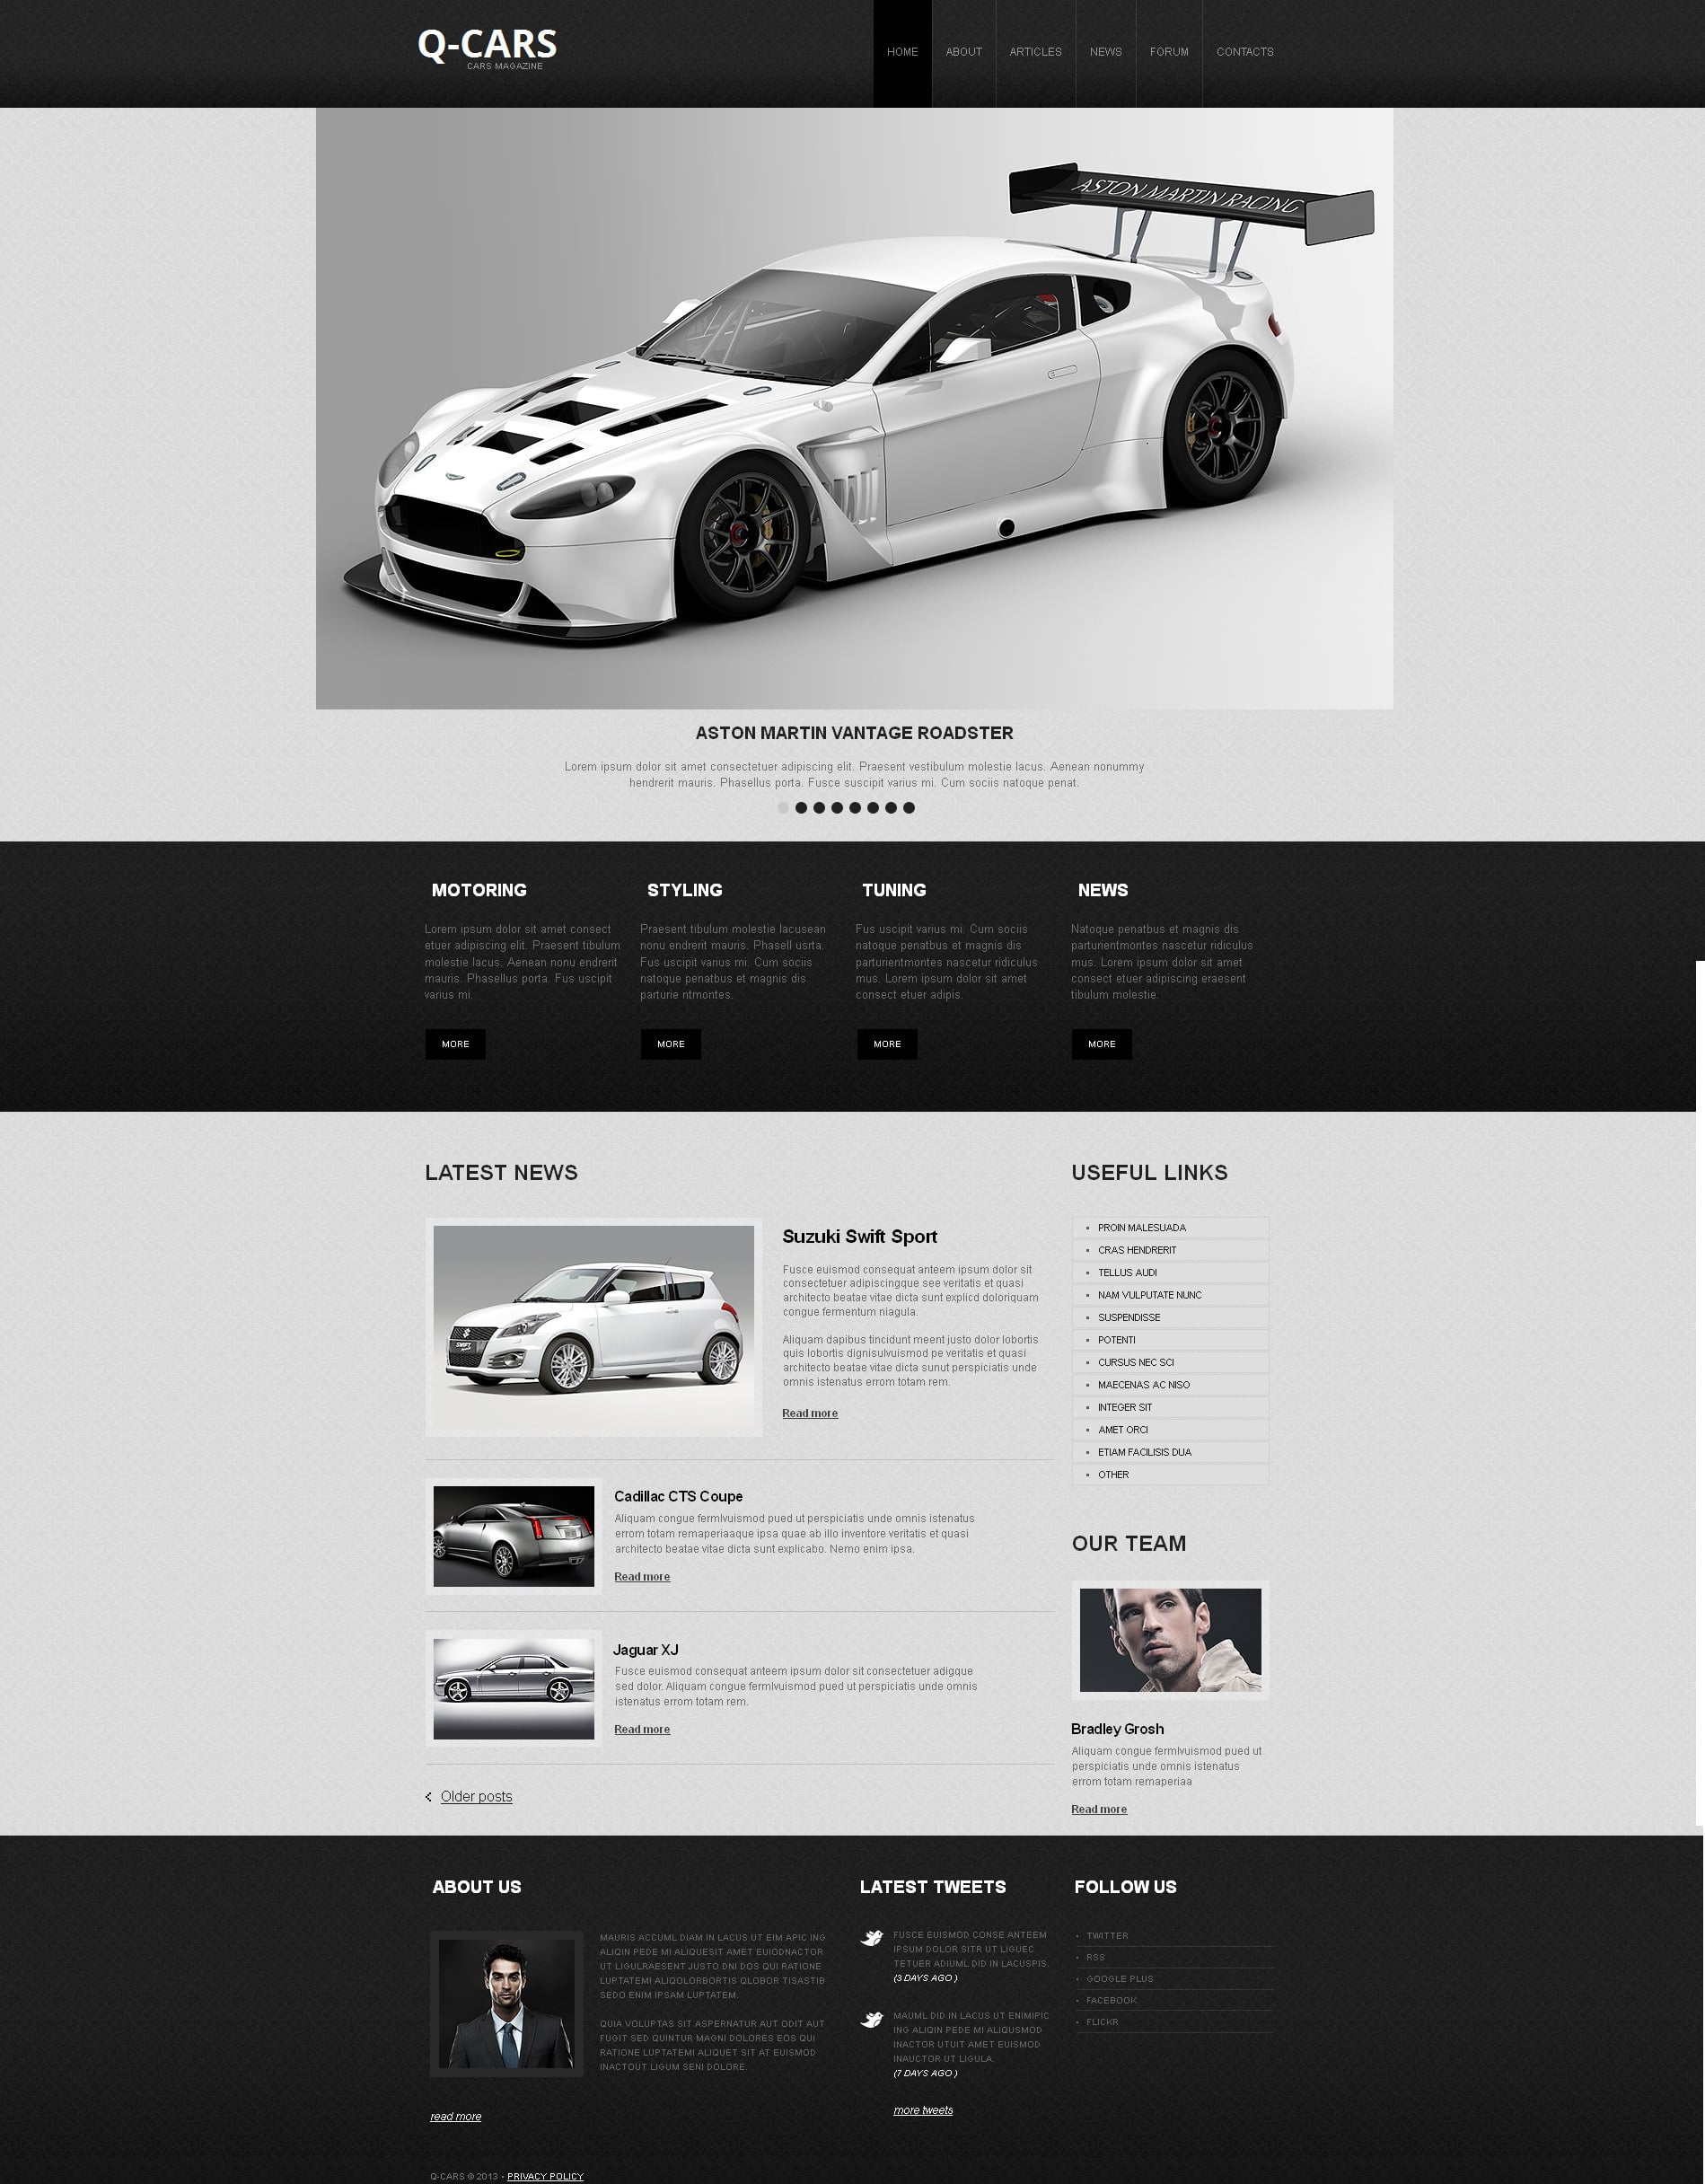 Clean Website Design in Black and White